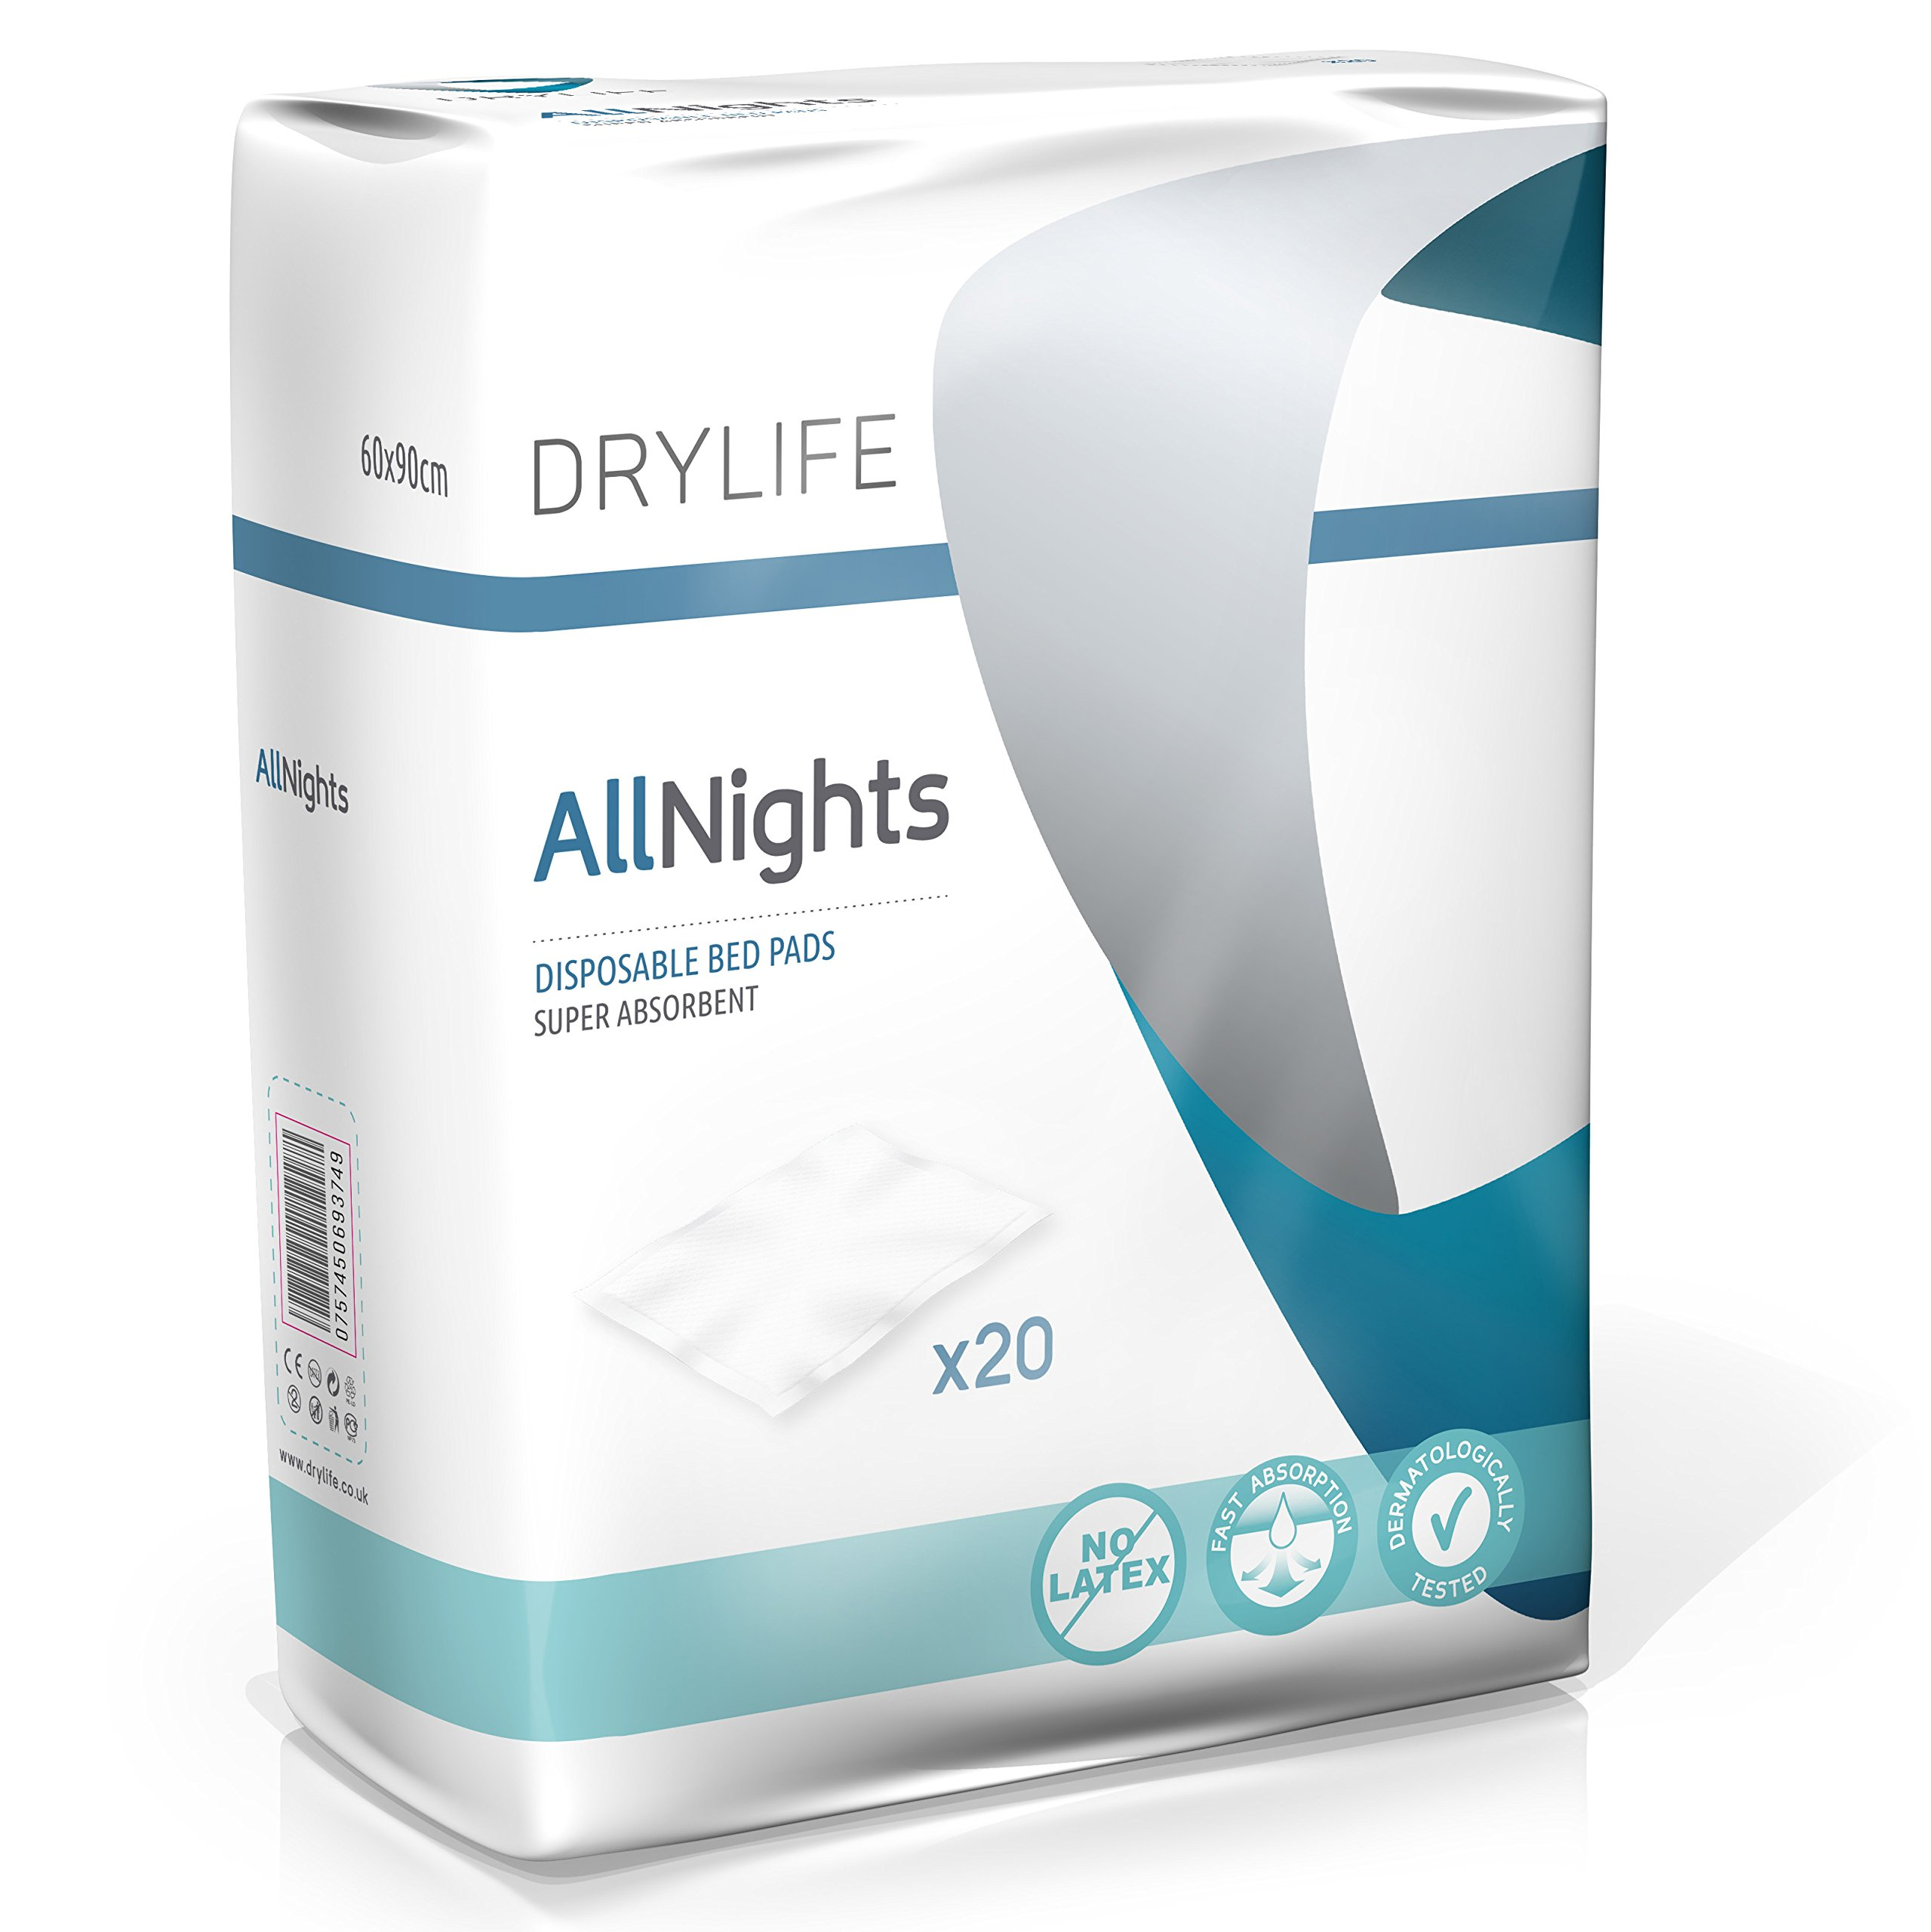 all night disposable bed pads 40x60cm super absorbent soft dry